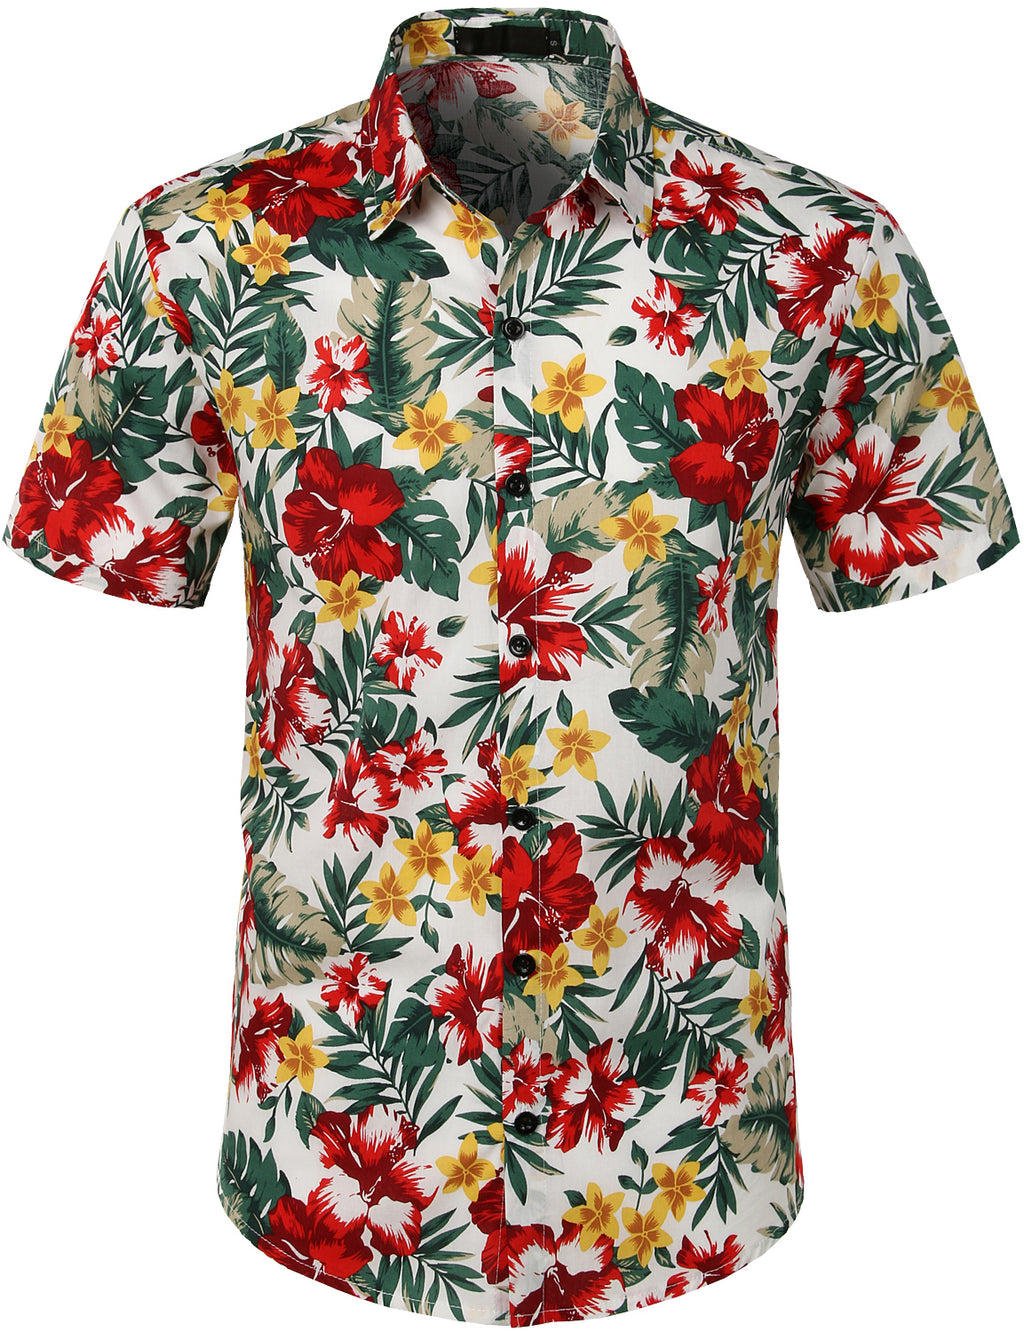 JOGAL Men's Flower Casual Button Down Short Sleeve Hawaiian Shirt(Plumeria)